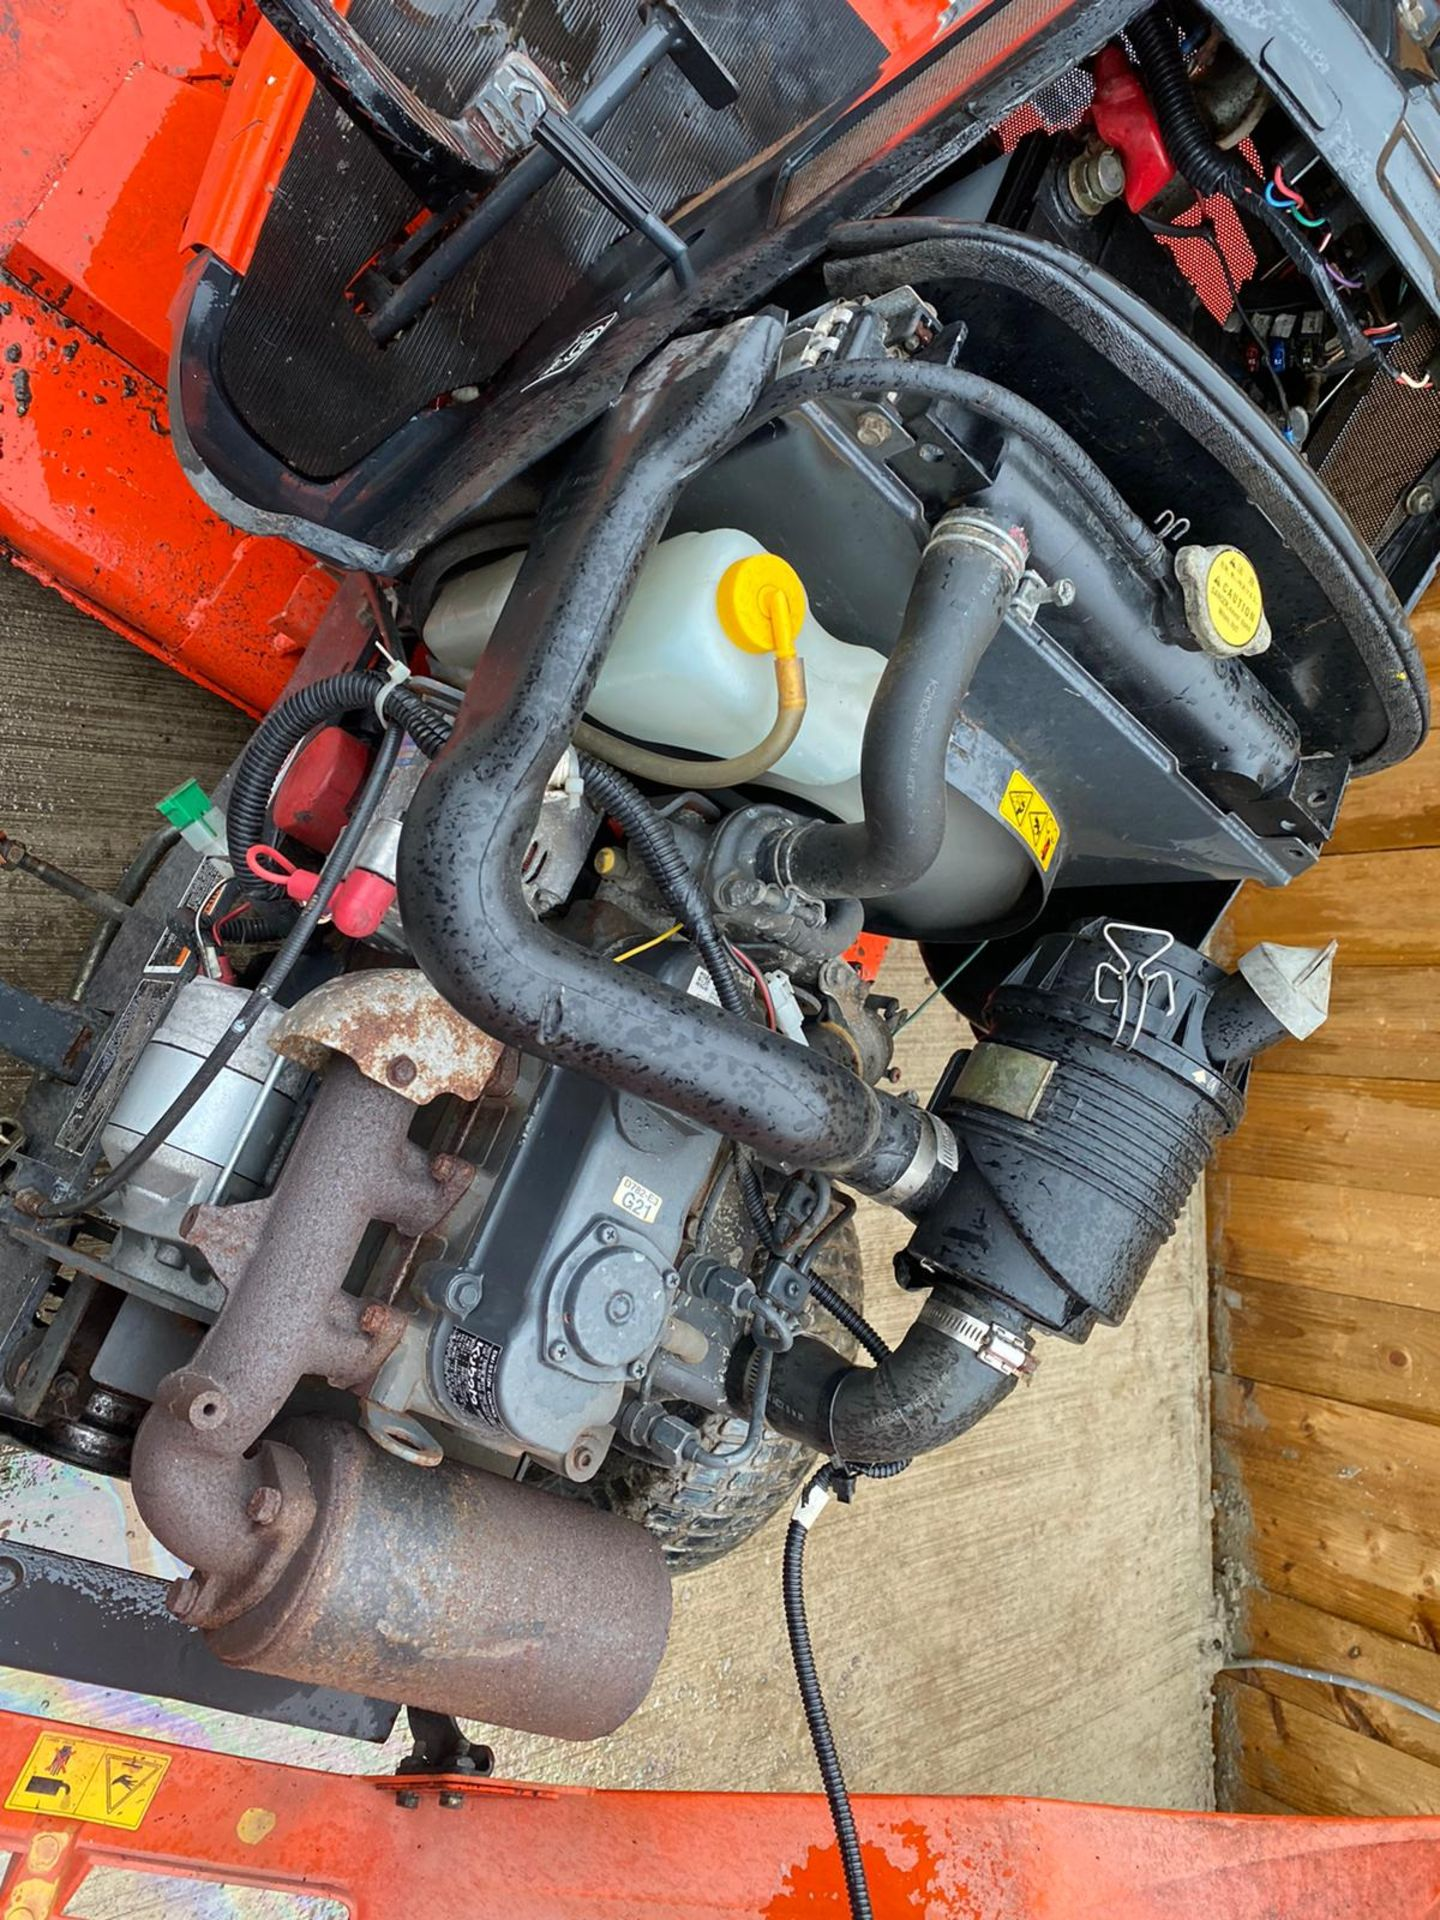 2009 KUBOTA G2160 DIESEL RIDE ON LAWN MOWER, IN EXCELLENT CONDITION *PLUS VAT* - Image 3 of 4